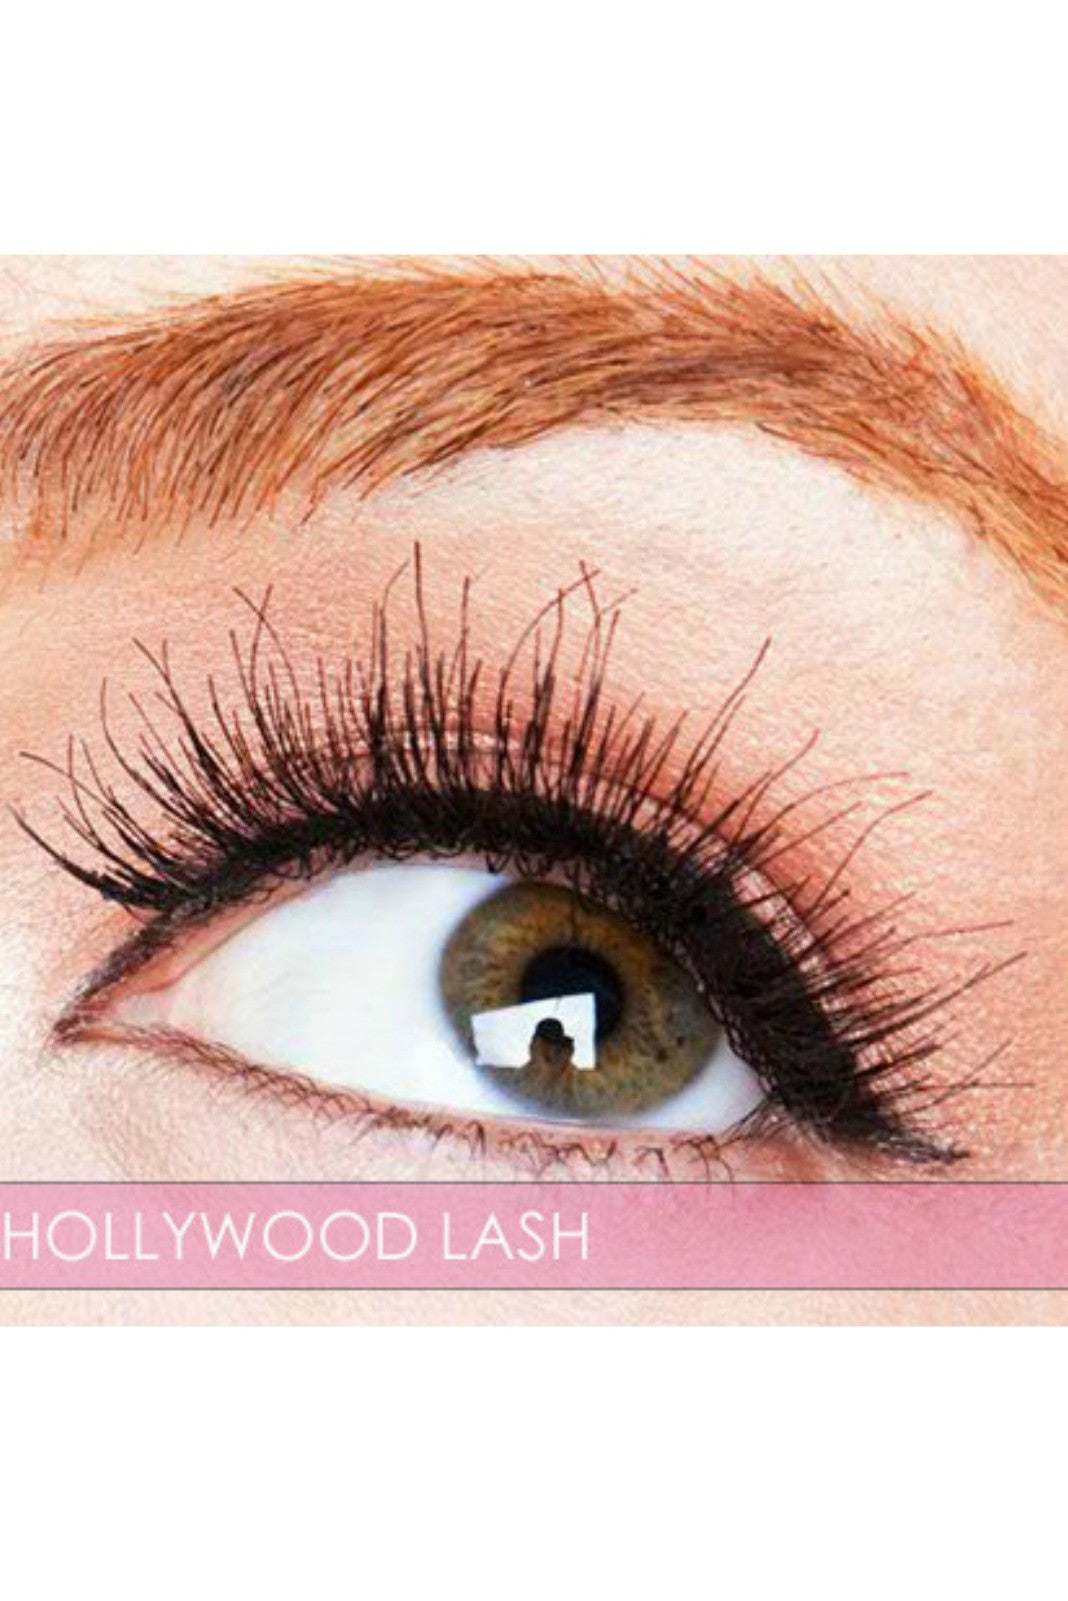 Hollywood Lash